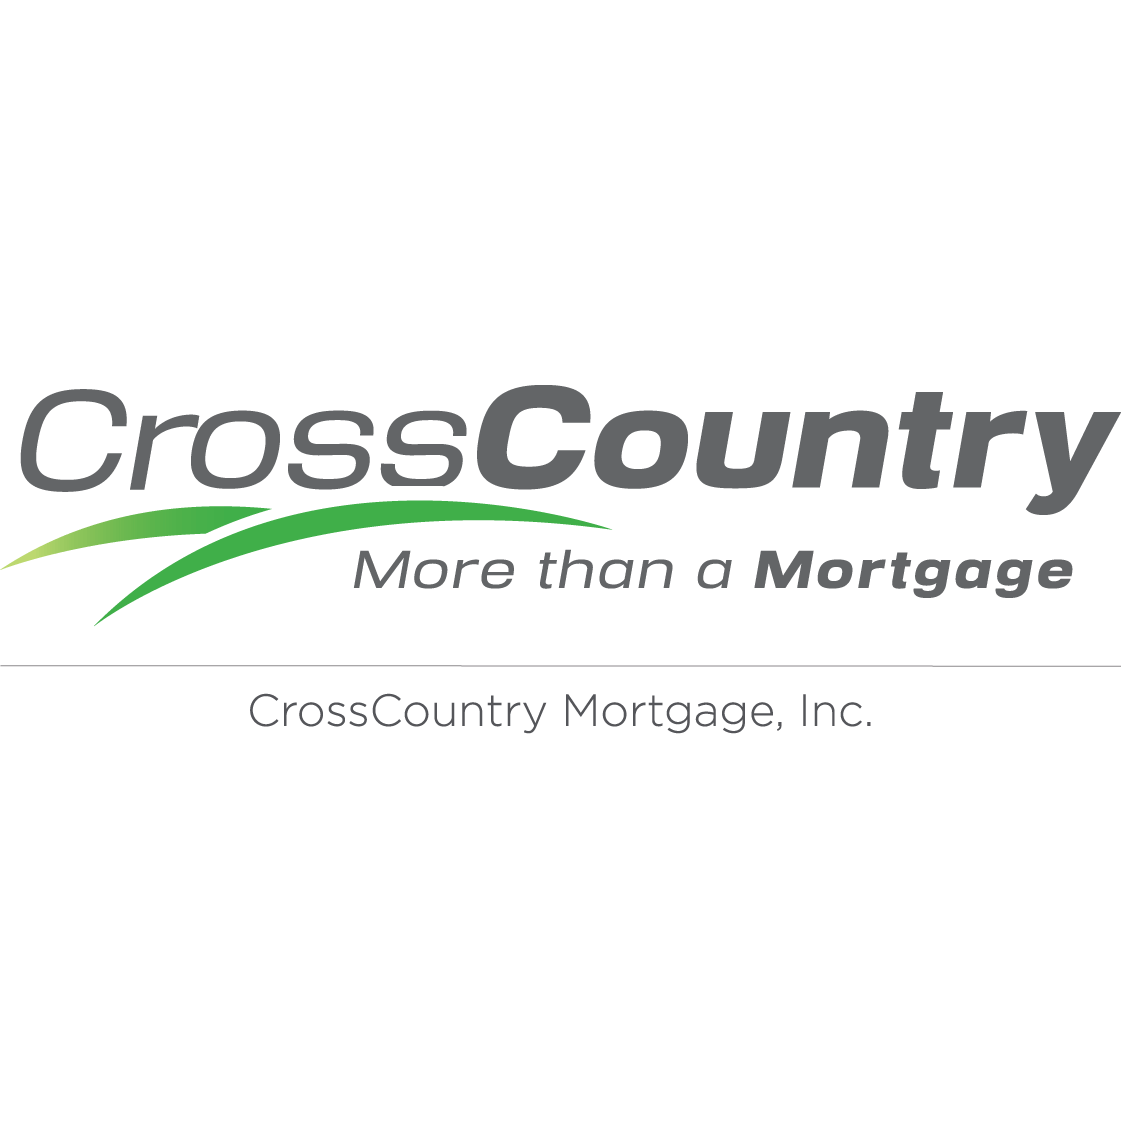 CrossCountry Mortgage, Inc. image 0